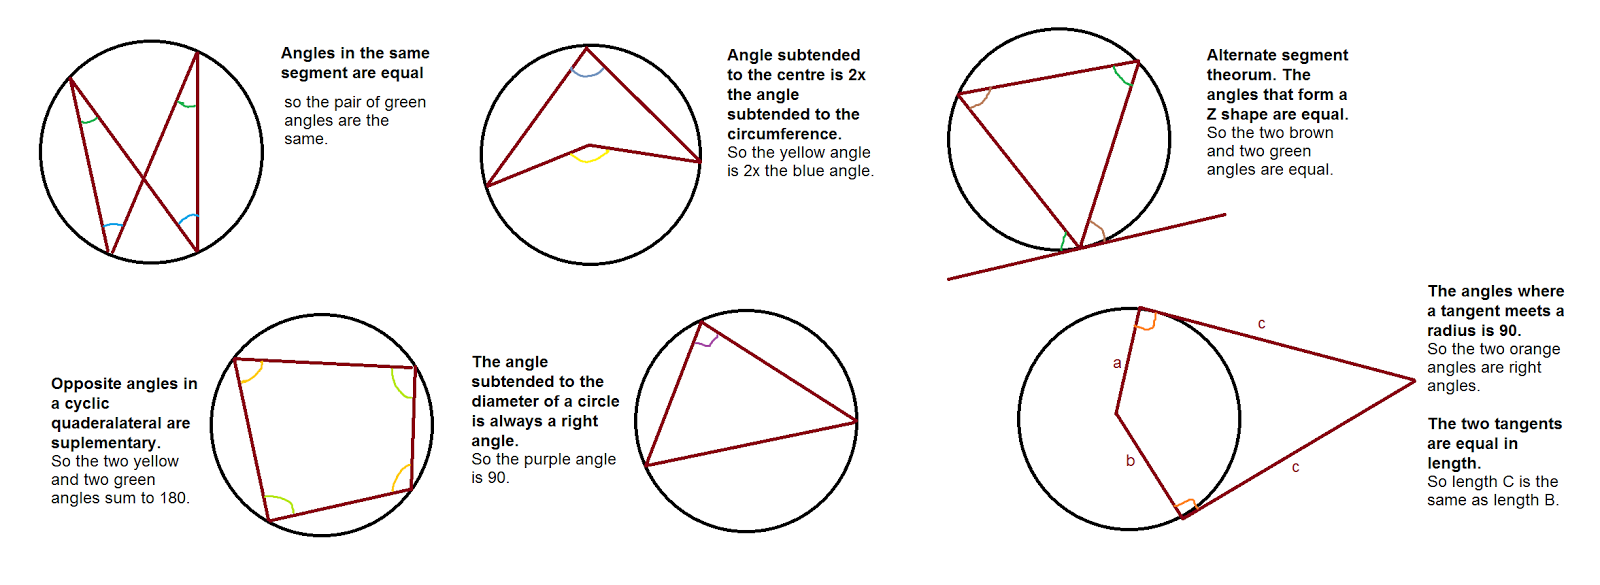 Cds exam 8 important theorems to solve circle problems in geometry whole geometry cant be covered in single article so here in this article i tried to put theorems related to circles in geometry hexwebz Gallery